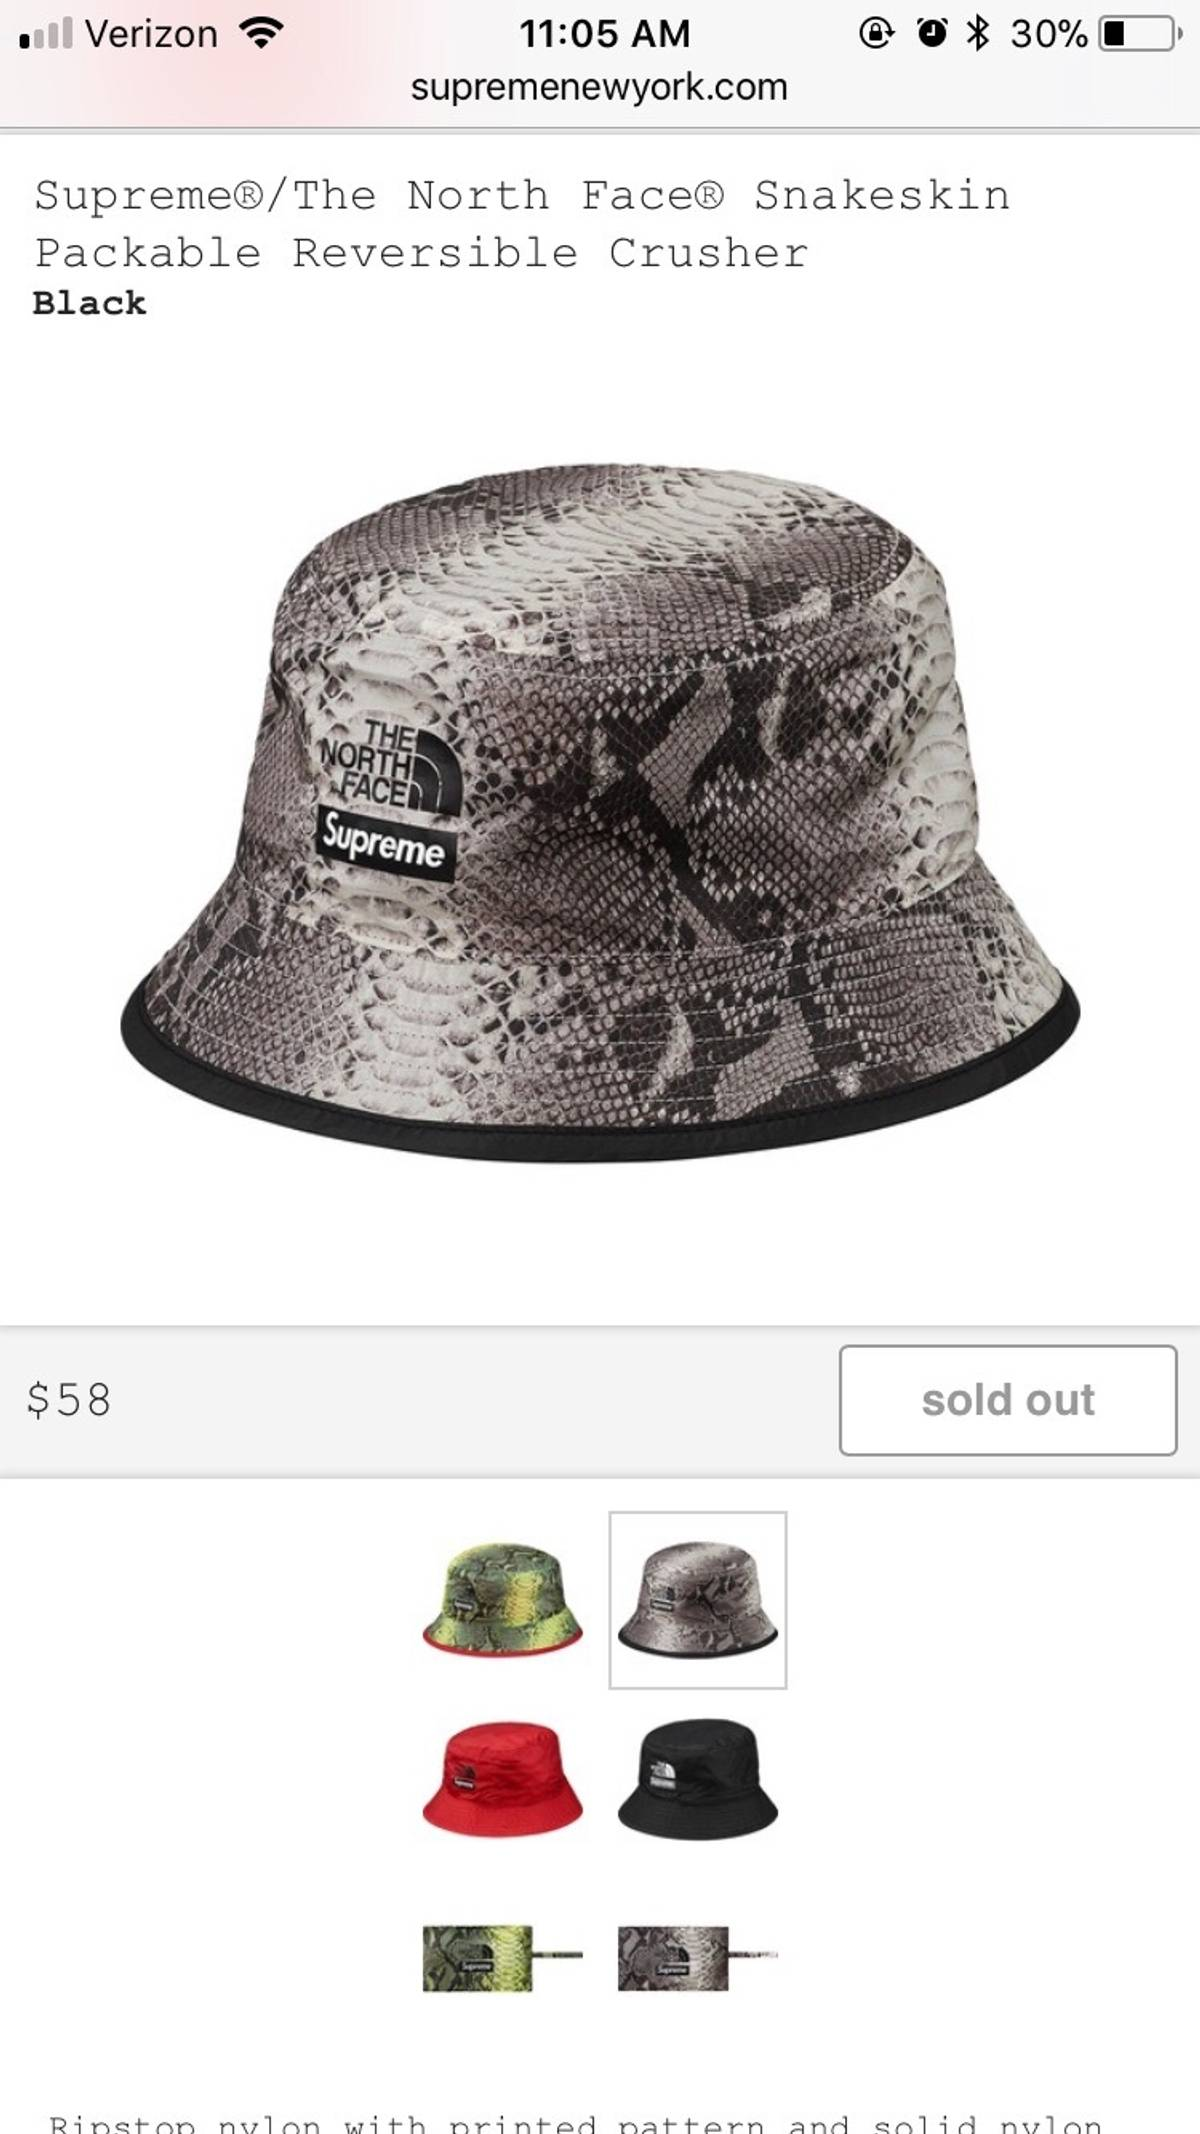 c3a13046b Supreme × The North Face Supreme X Tnf L/Xl Black And White Snakeskin  Packable Reversible Crusher Bucket Hat Size One Size $117